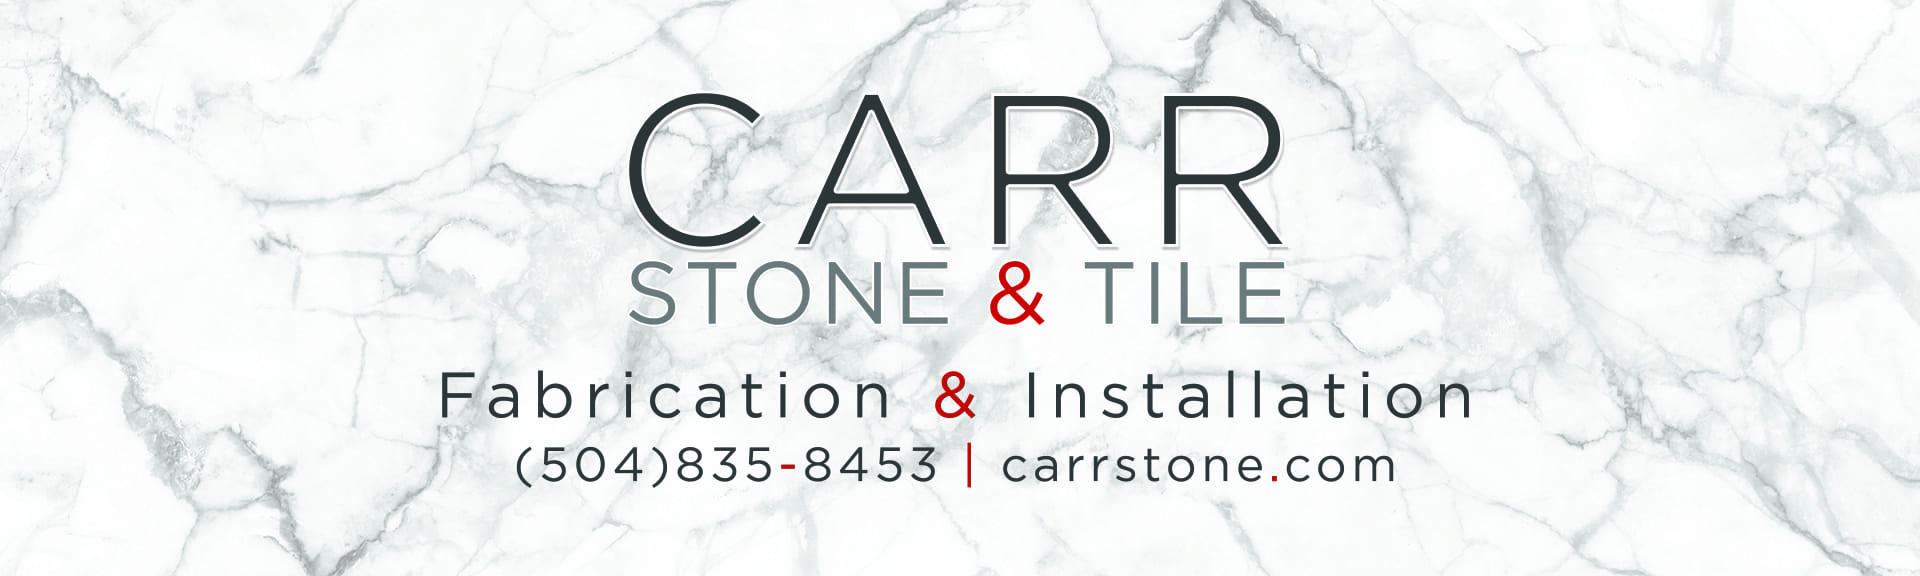 Carr stone & Tile Billboard